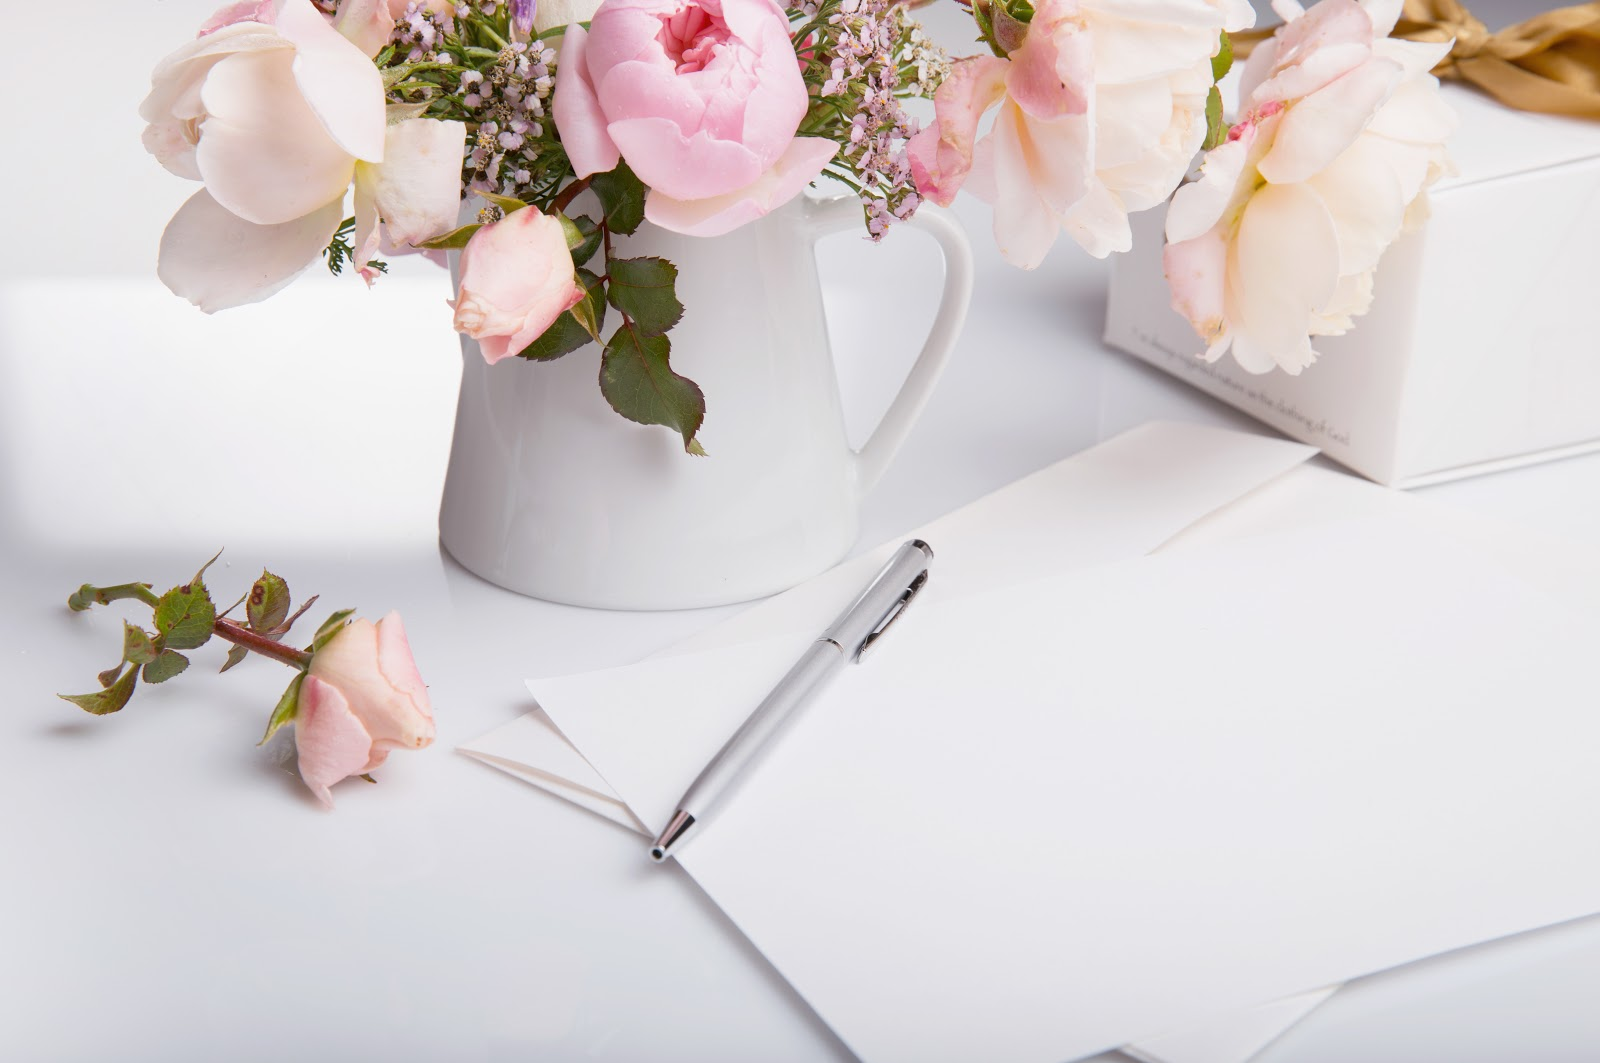 DIY Wedding Invitations: Flowers and paper